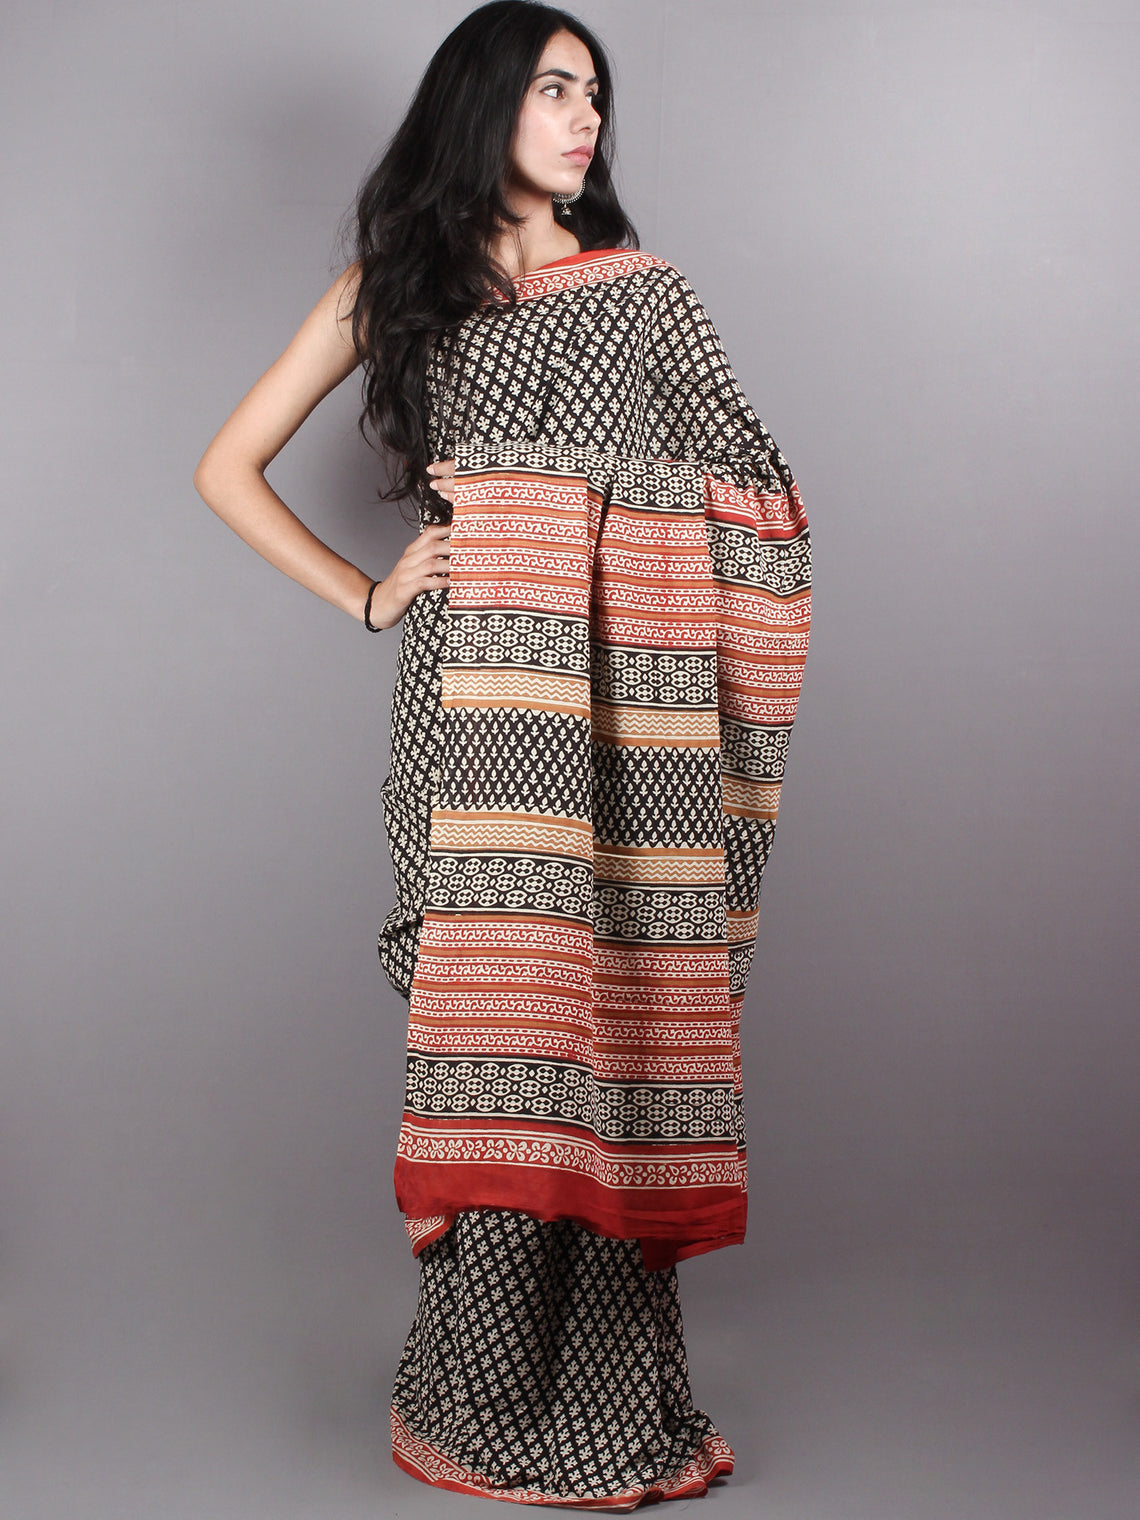 Black and beige Cotton Hand Block Printed Saree - S03170170